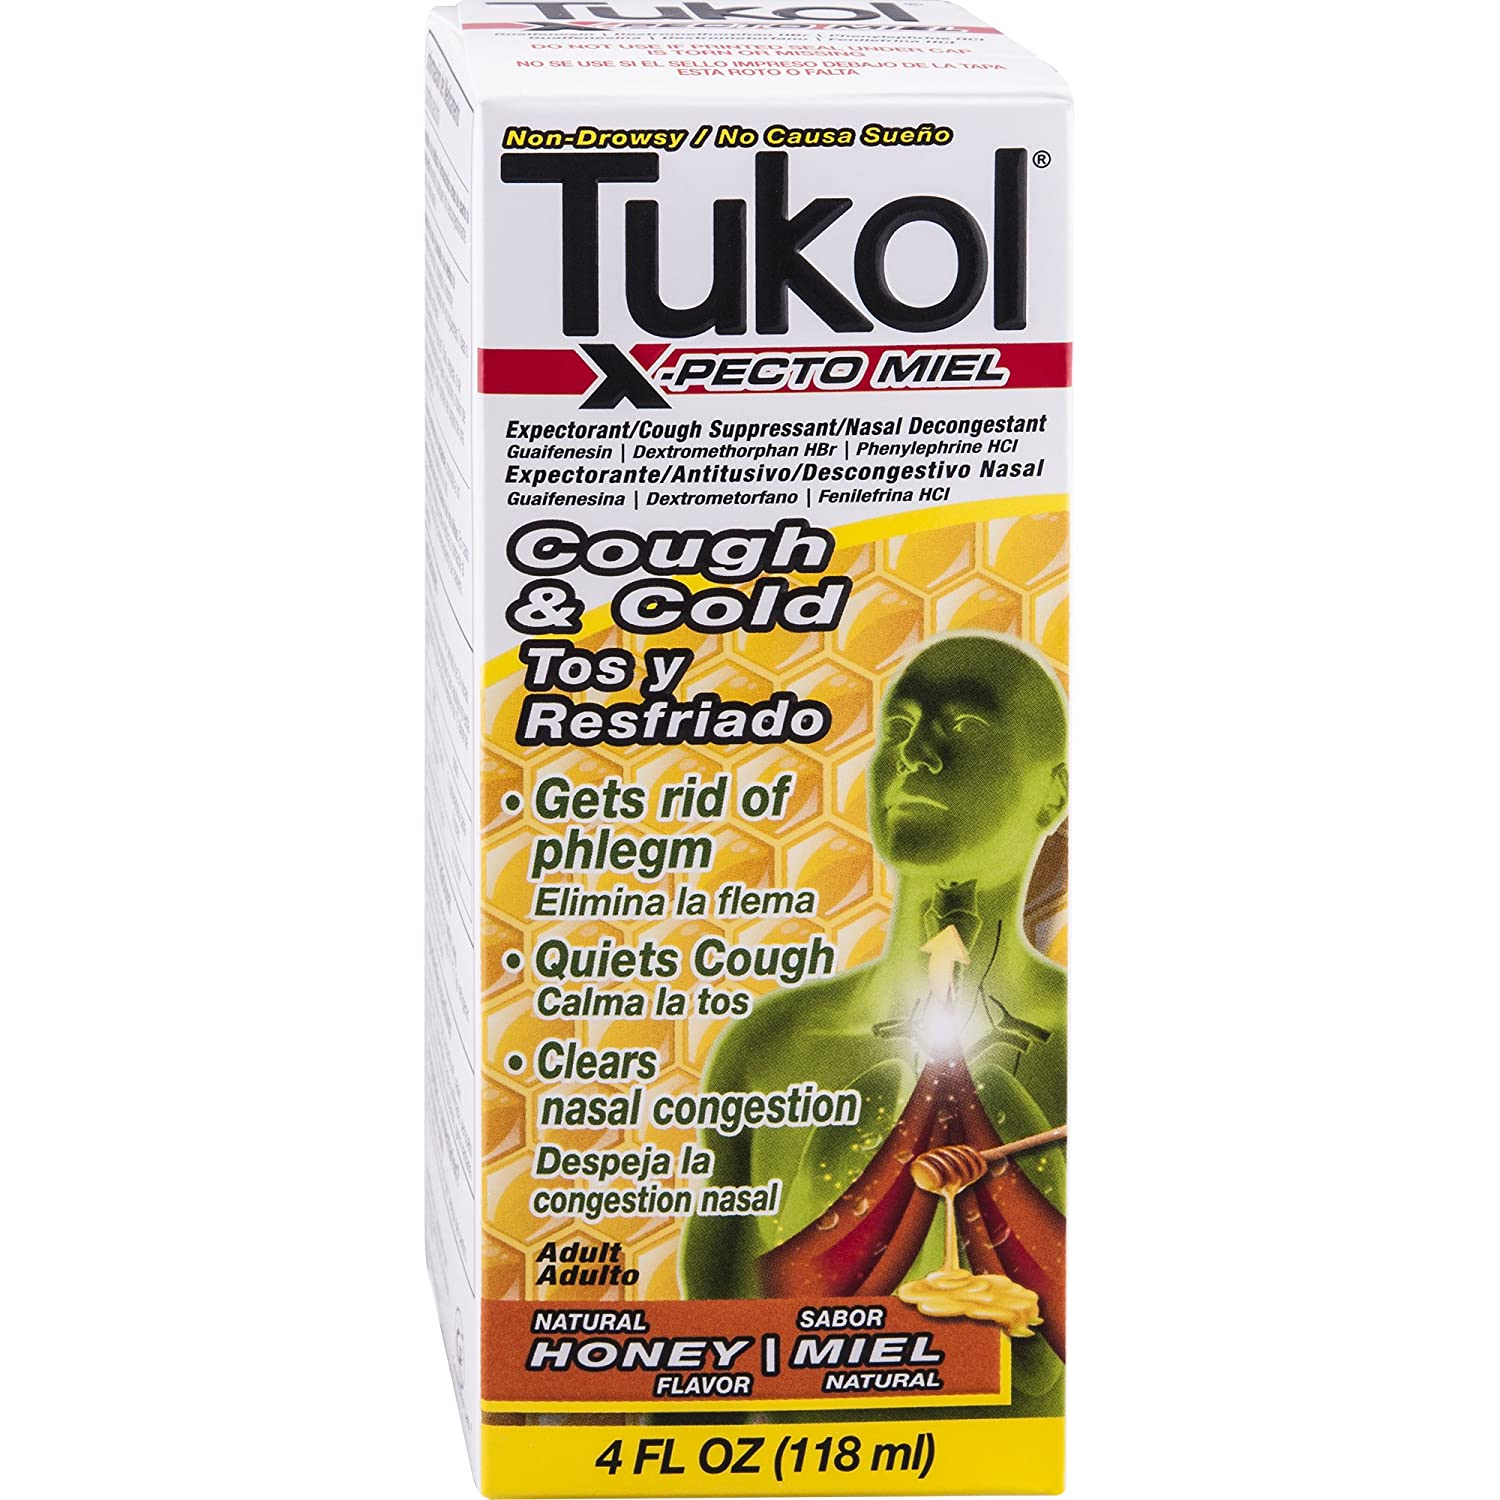 Amazon.com: TUKOL Adult X-Pecto Miel Honey Cold Syrup, 4 oz.: Health & Personal Care